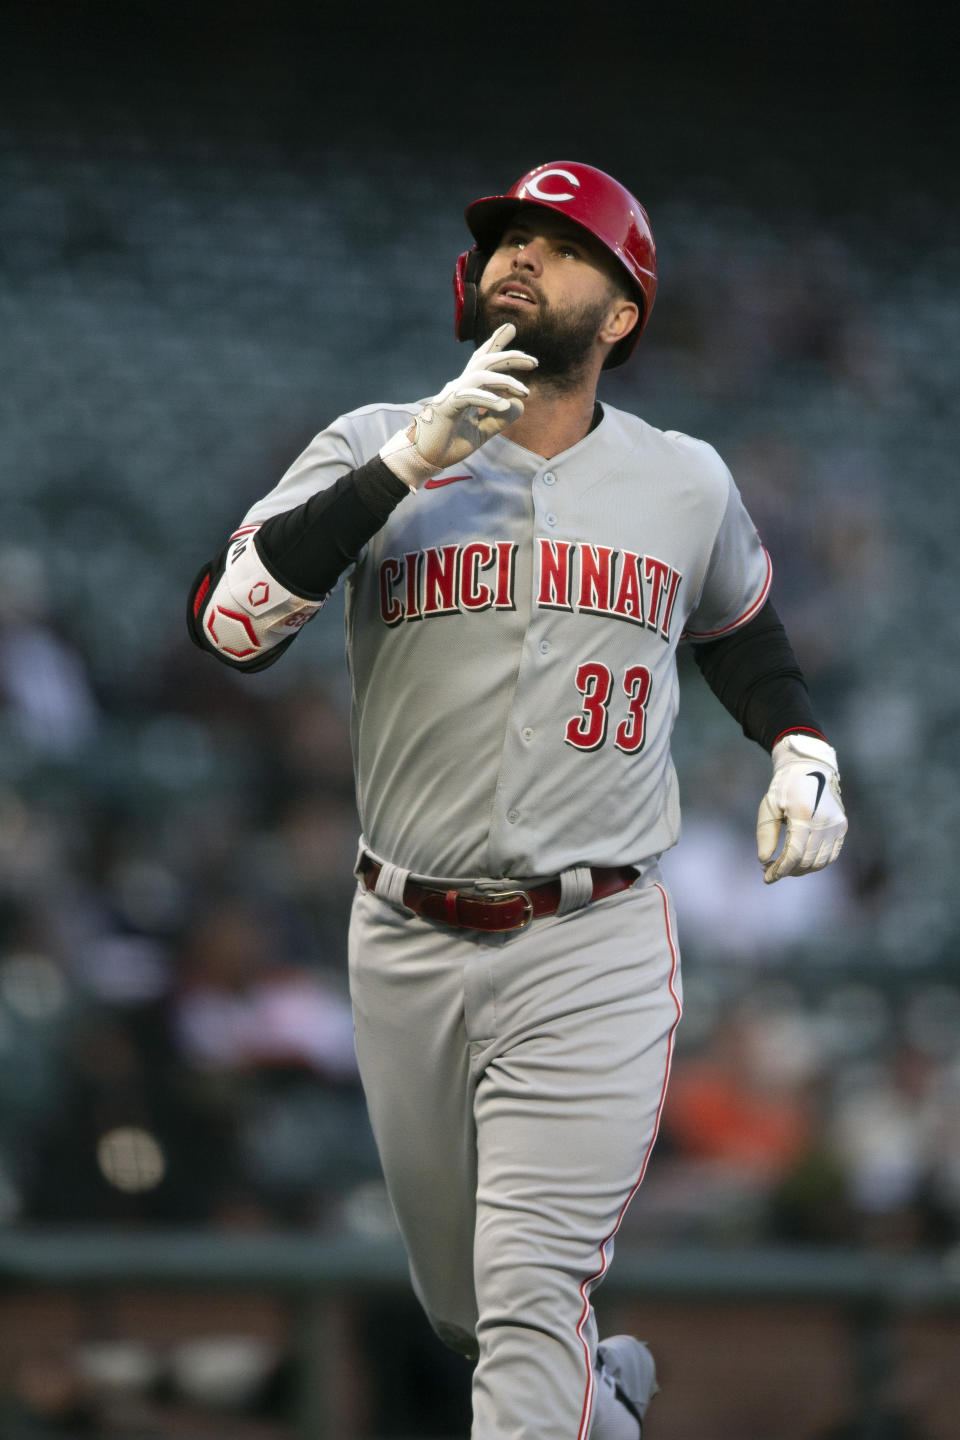 Cincinnati Reds' Jesse Winker points skyward as he runs out his two-run home run against the San Francisco Giants during the third inning of a baseball game, Monday, April 12, 2021, in San Francisco, Calif. (AP Photo/D. Ross Cameron)